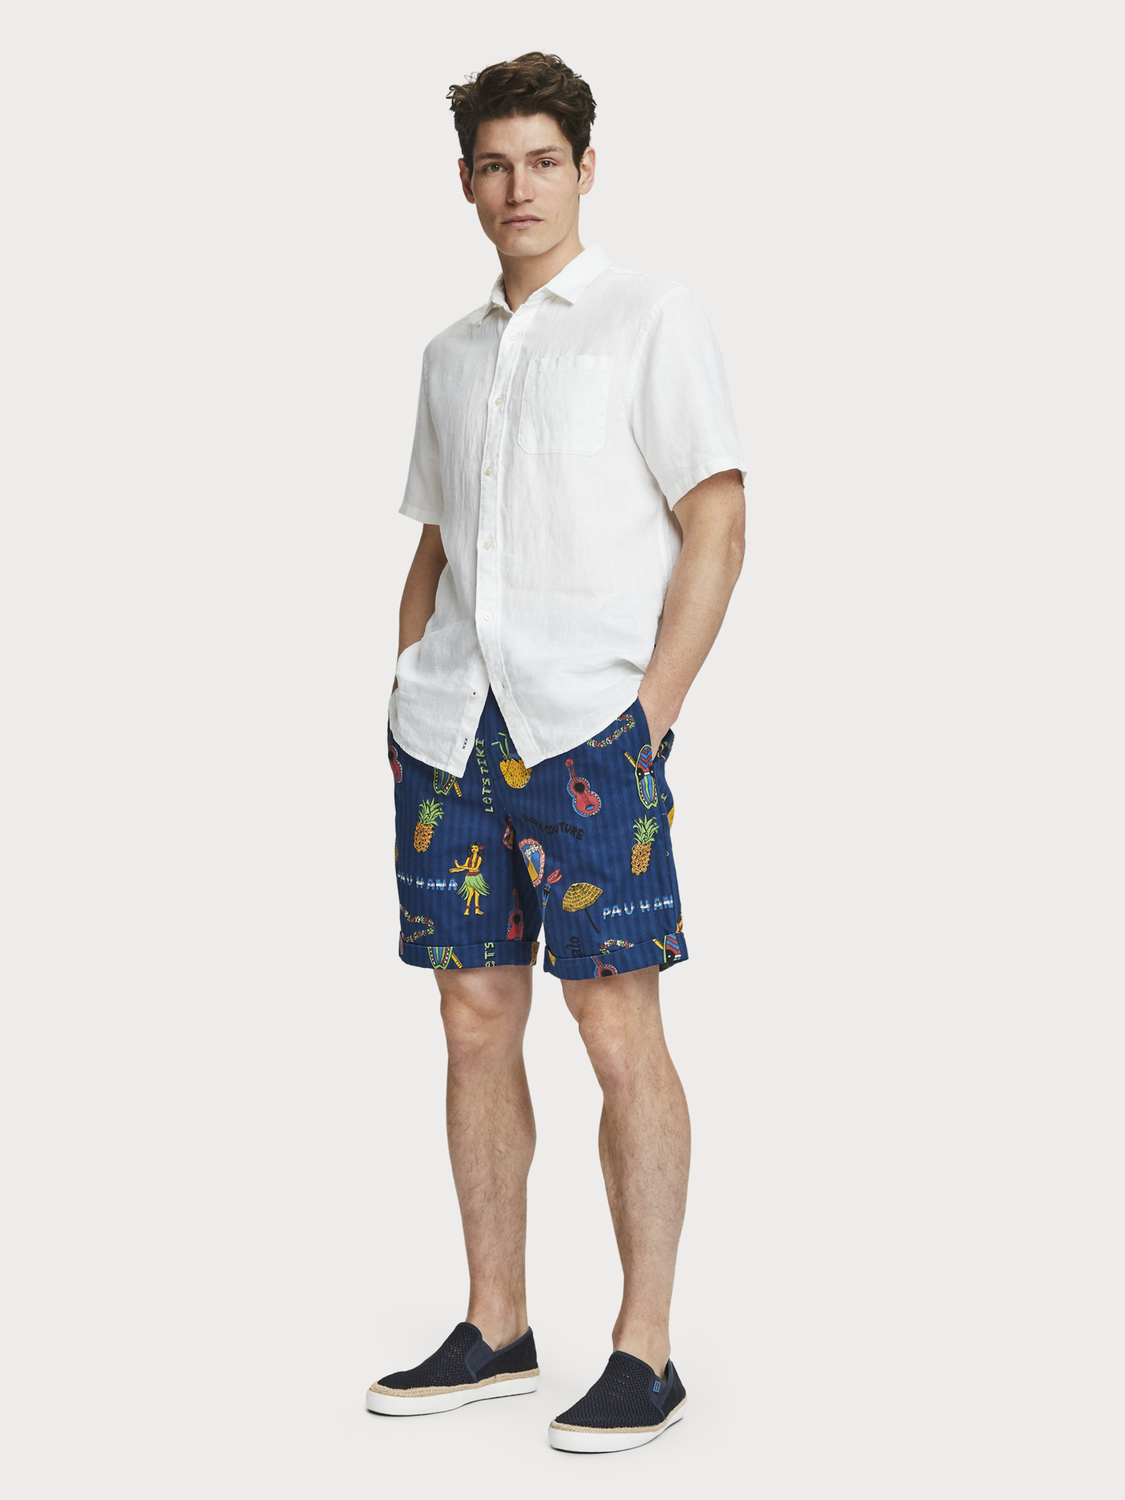 Herren Chino-Shorts mit Allover-Print